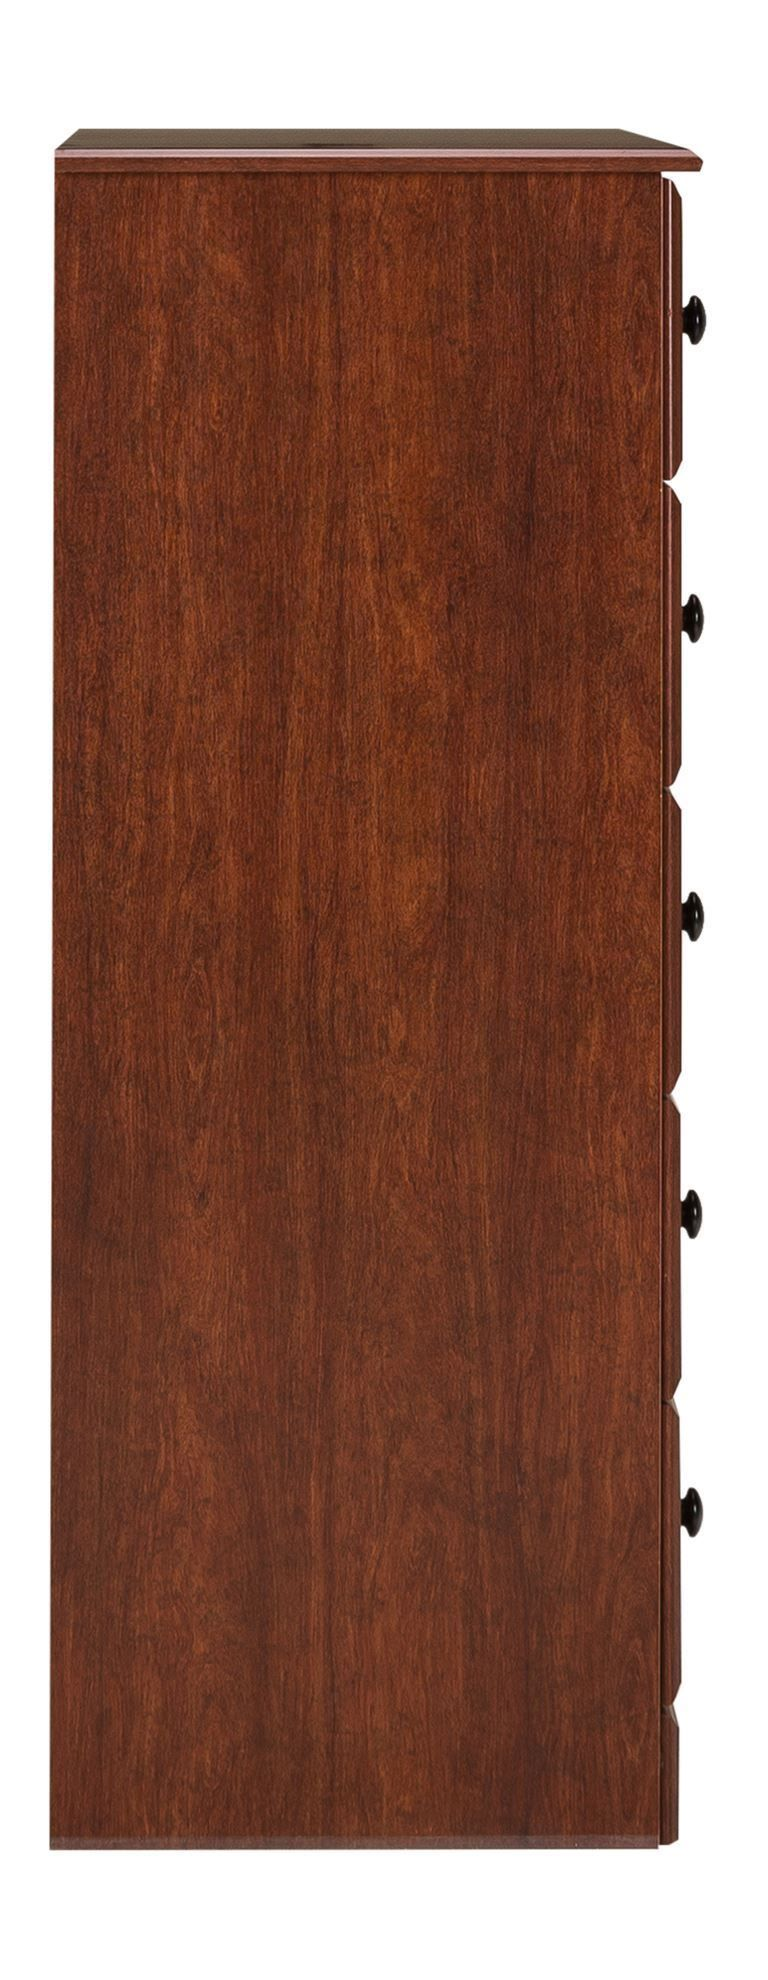 Picture of Cinnamon Fruitwood Five Drawer Chest